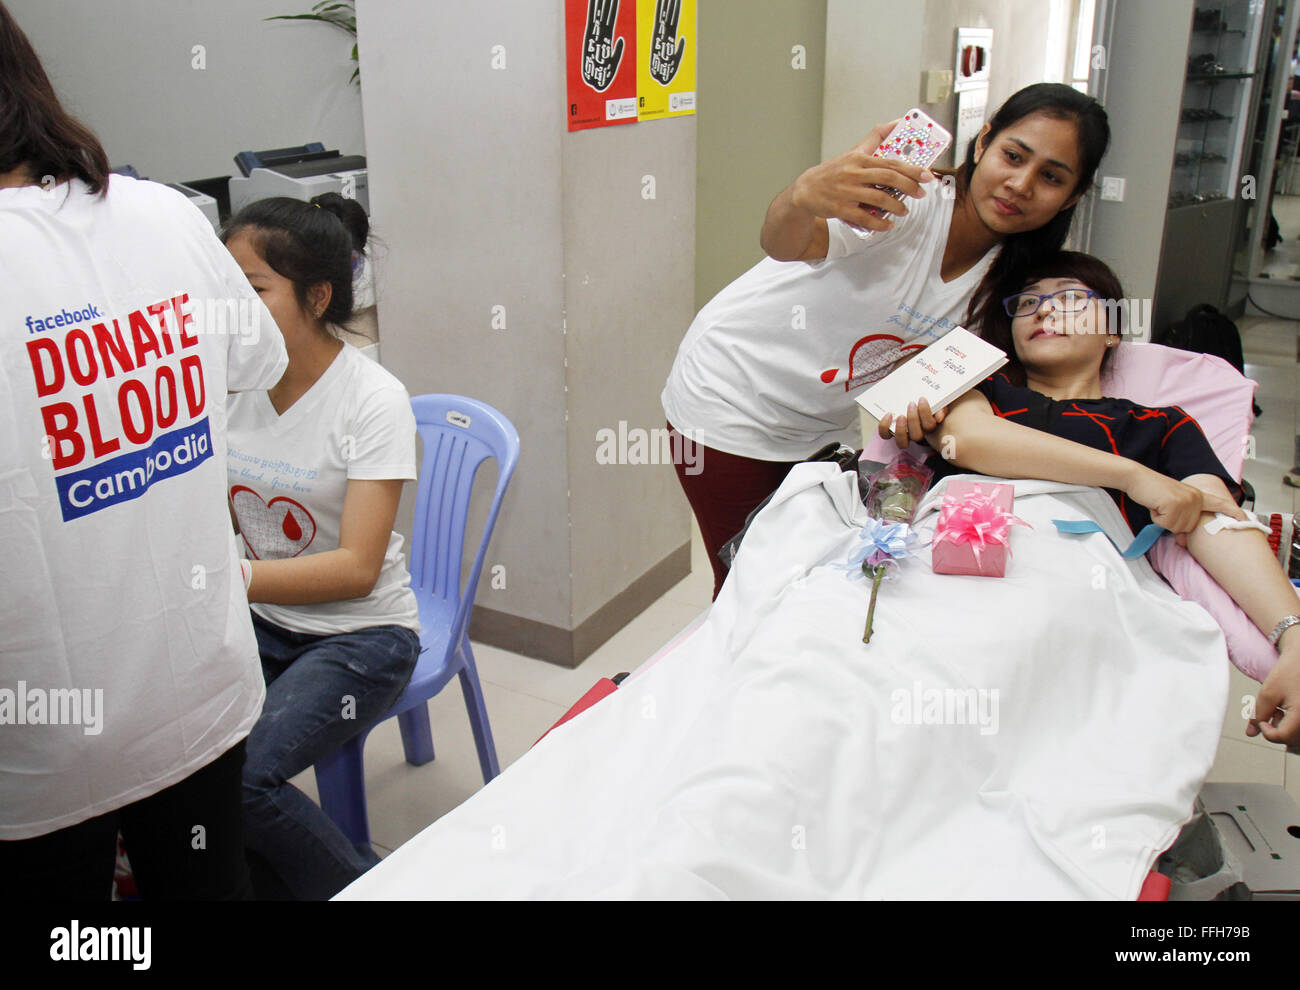 Phnom Penh, Cambodia. 14th Feb, 2016. A young woman takes a selfie with her friend who donates blood in Phnom Penh, - Stock Image